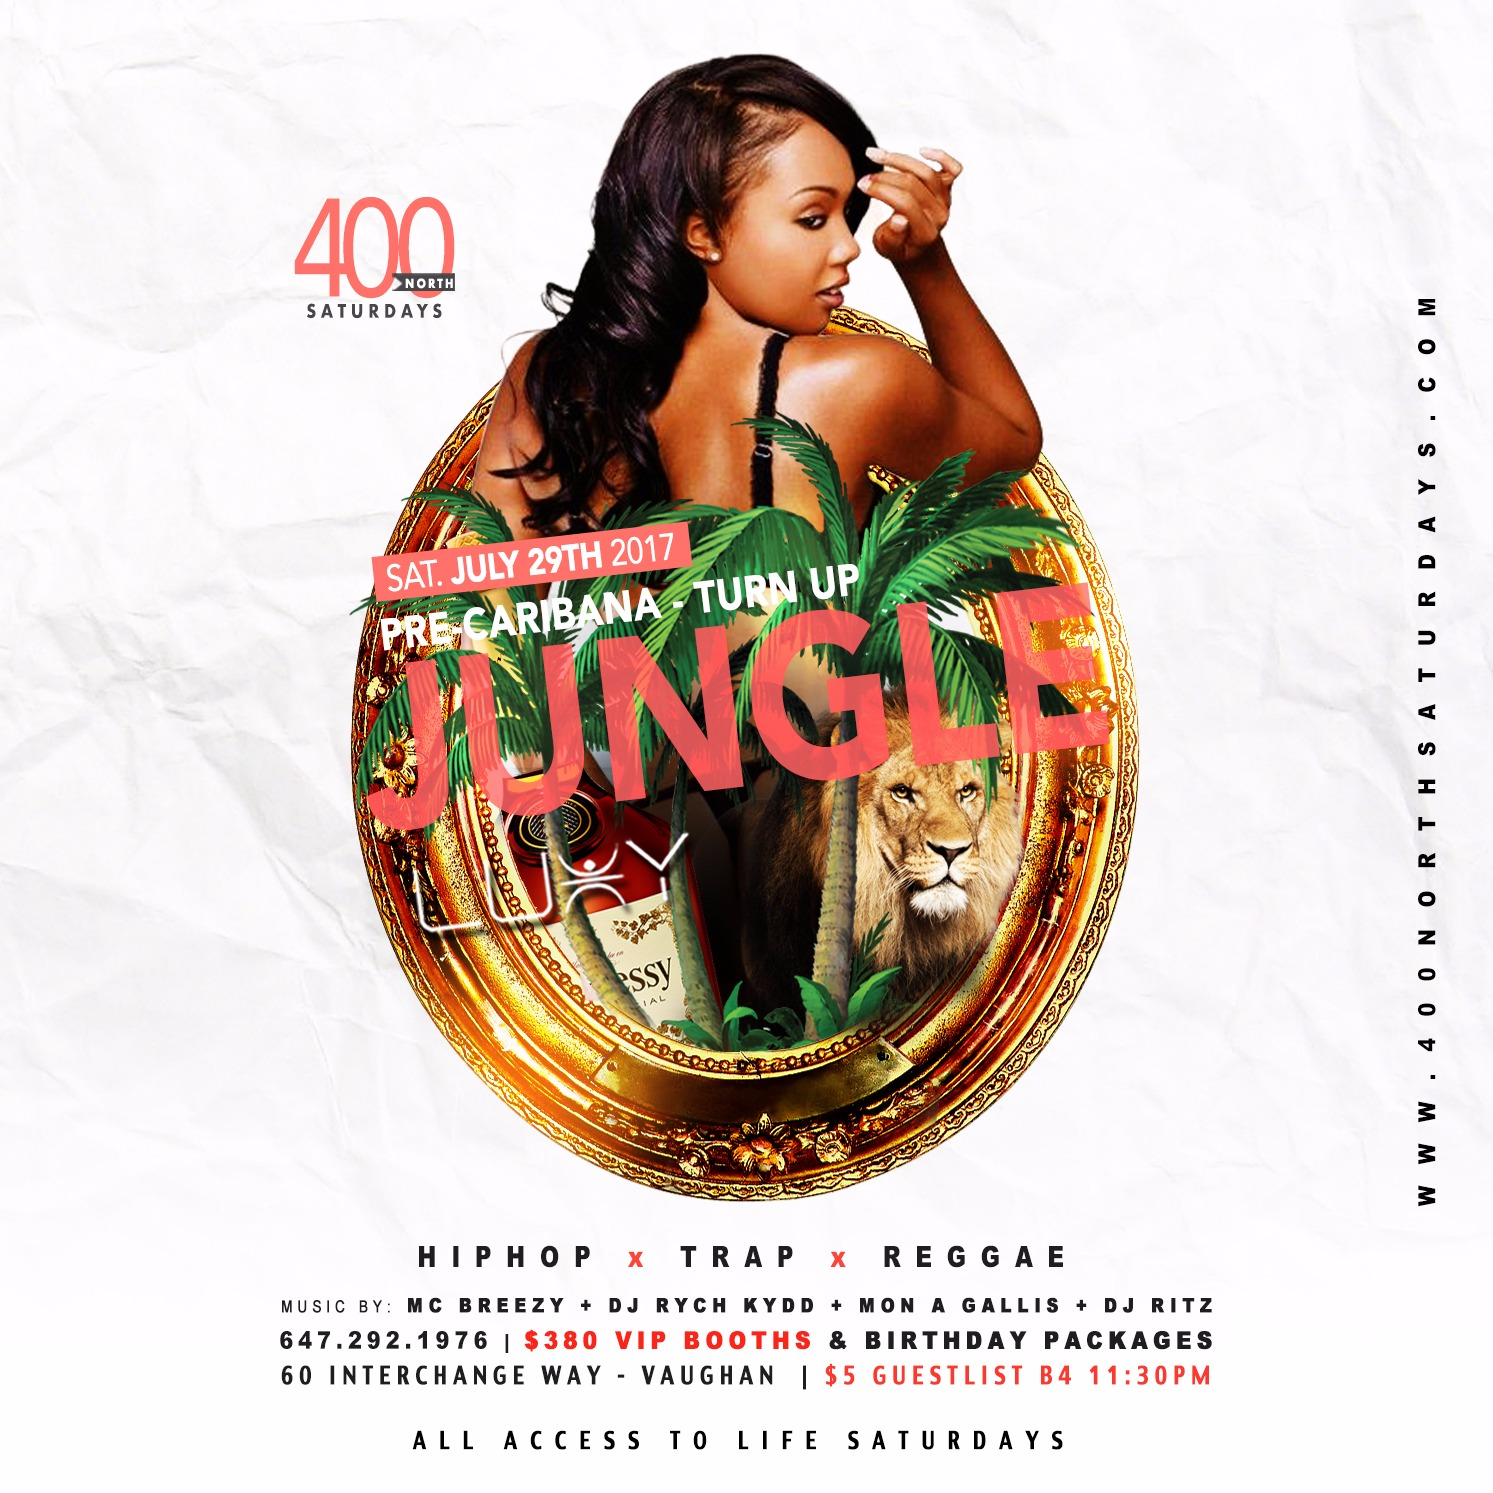 400 NORTH SATURDAYS - JUNGLE